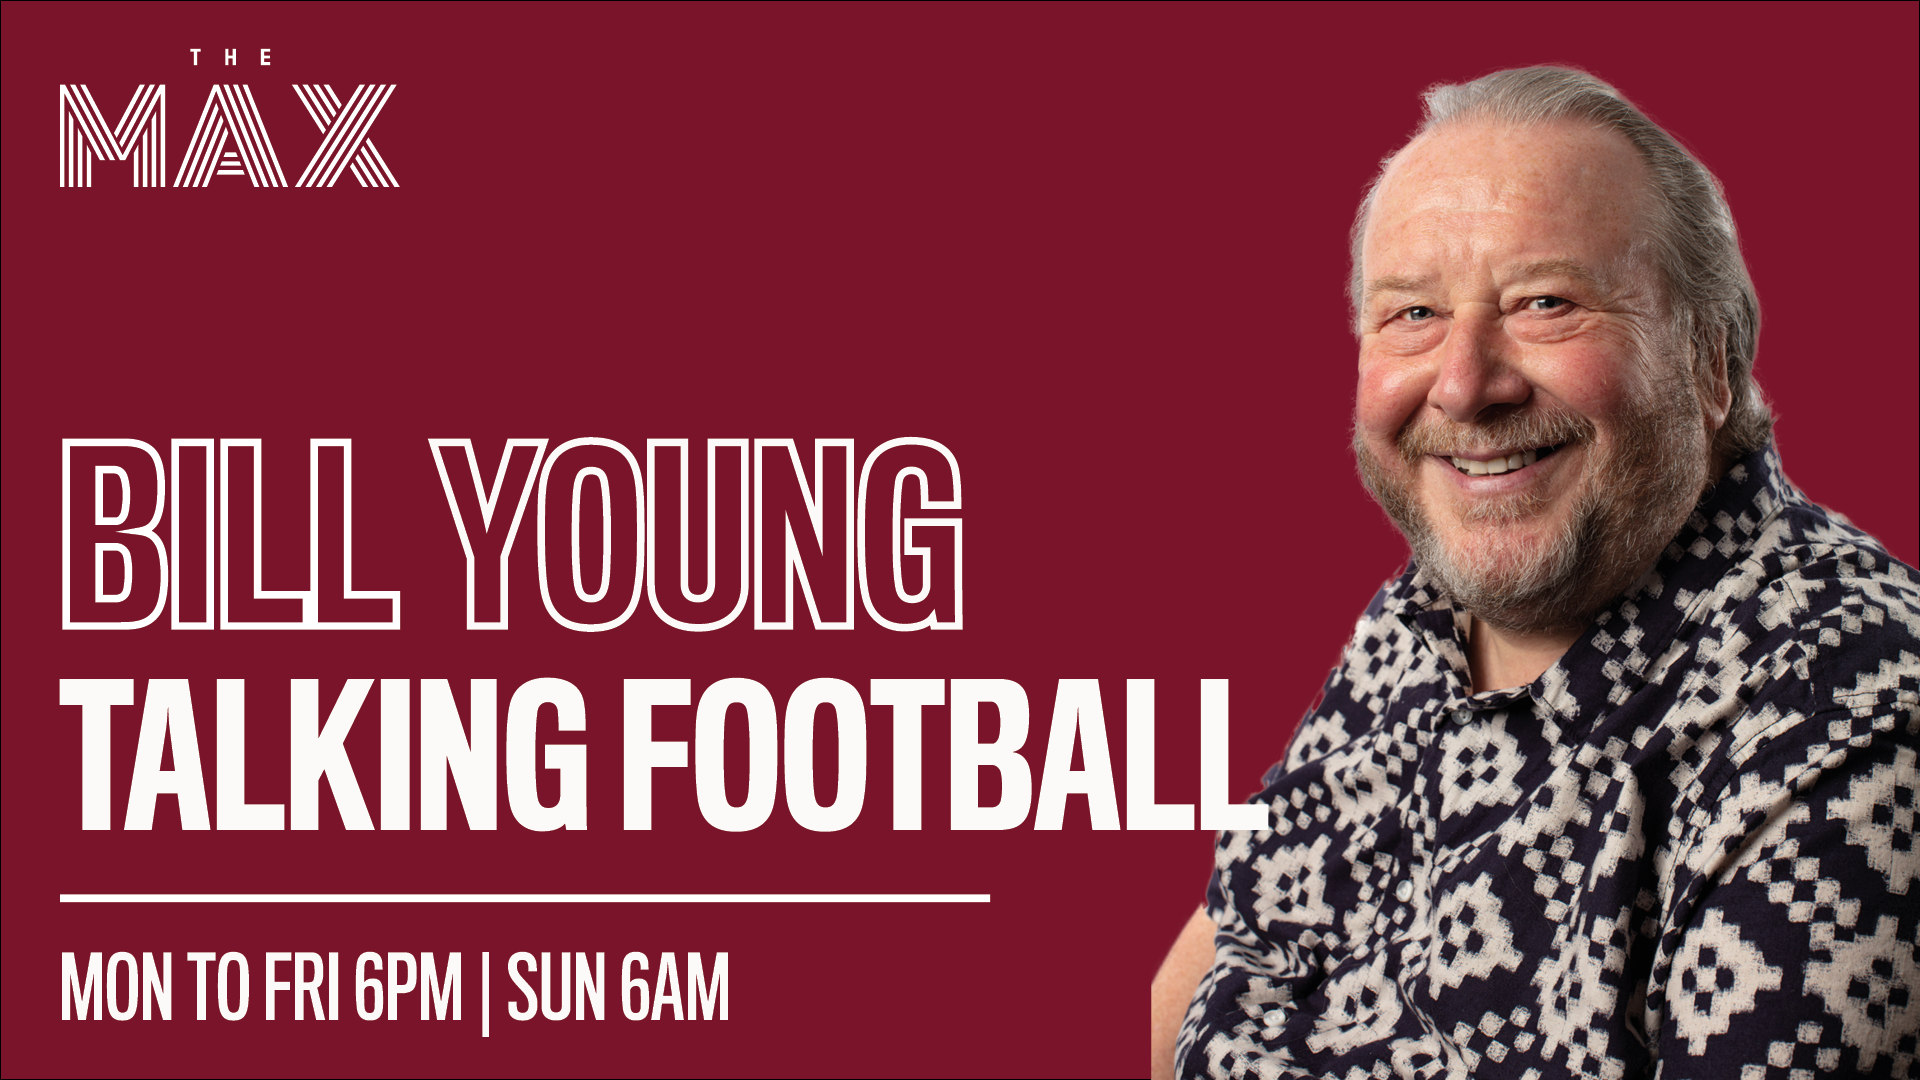 Talking Football with Bill Young Monday 17th May